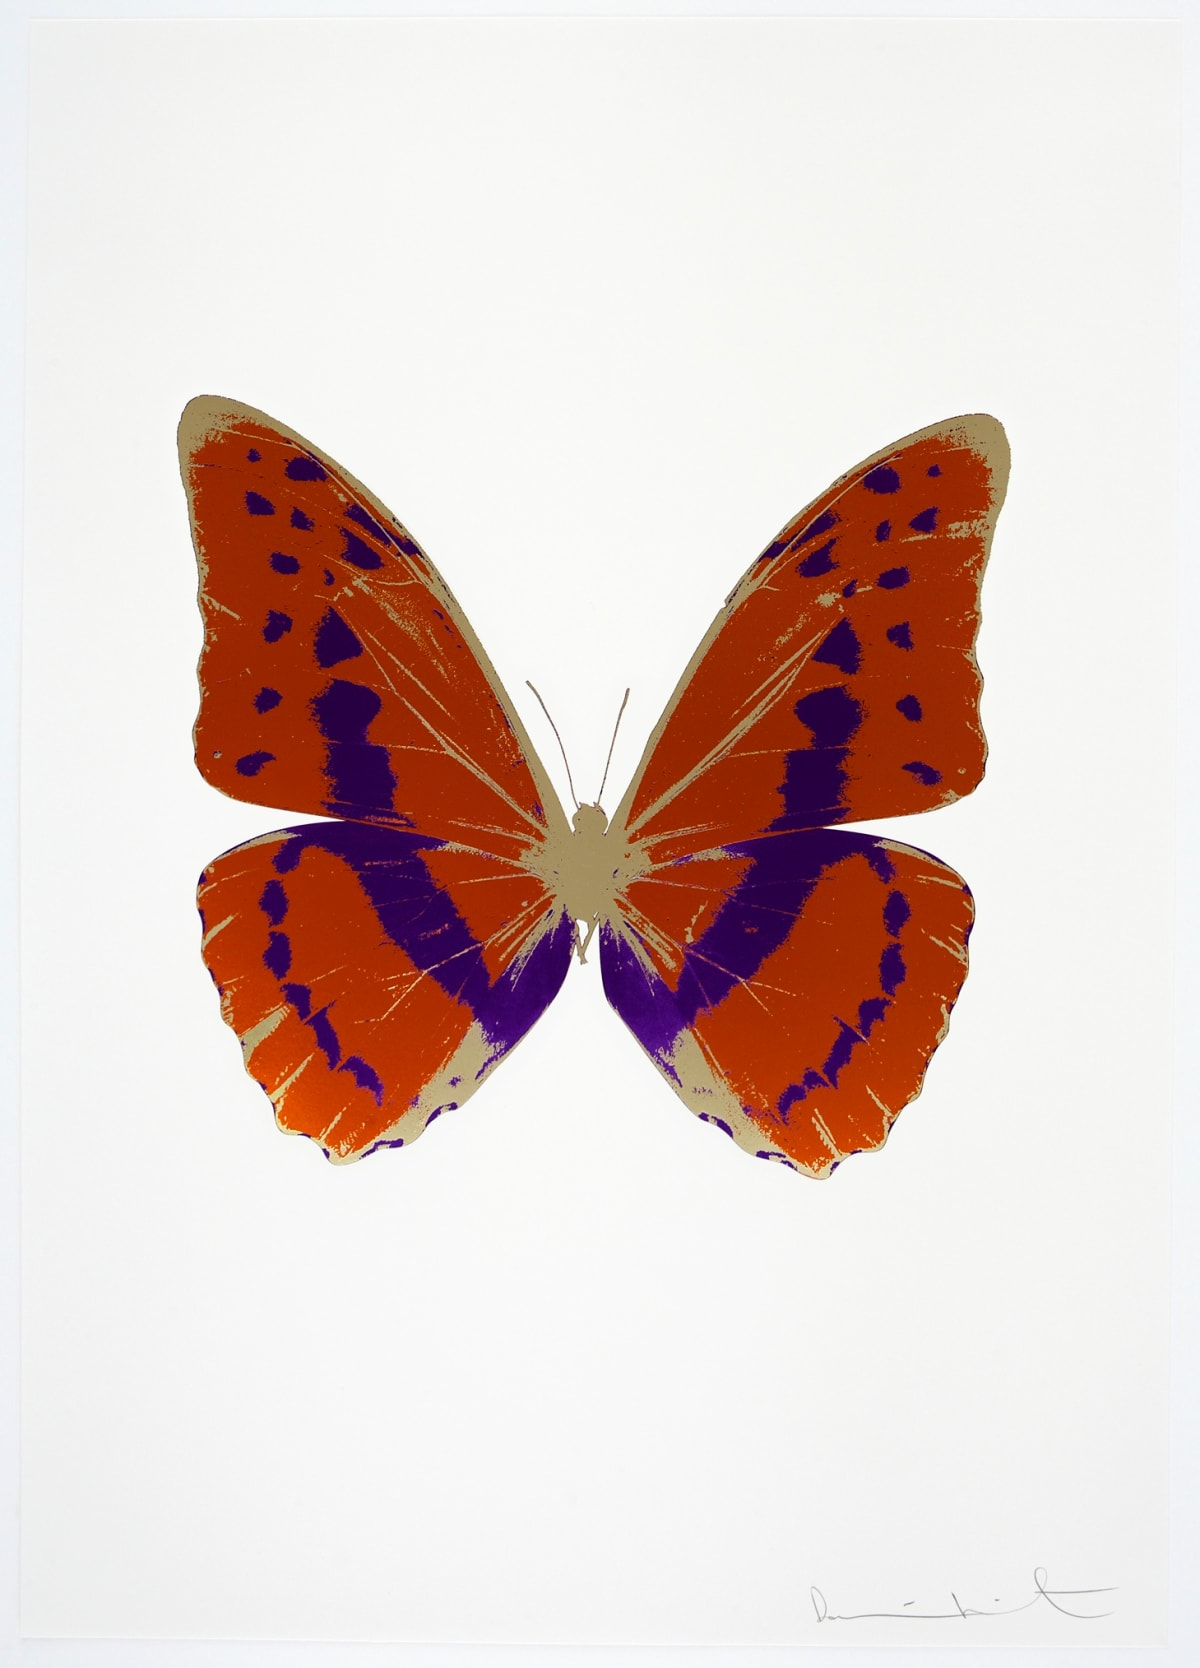 Damien Hirst The Souls III - Prairie Copper/Imperial Purple/Cool Gold, 2010 3 colour foil block on 300gsm Arches 88 archival paper. Signed and numbered. Published by Paul Stolper and Other Criteria 72 x 51cm OC7937 / 660-40 Edition of 15